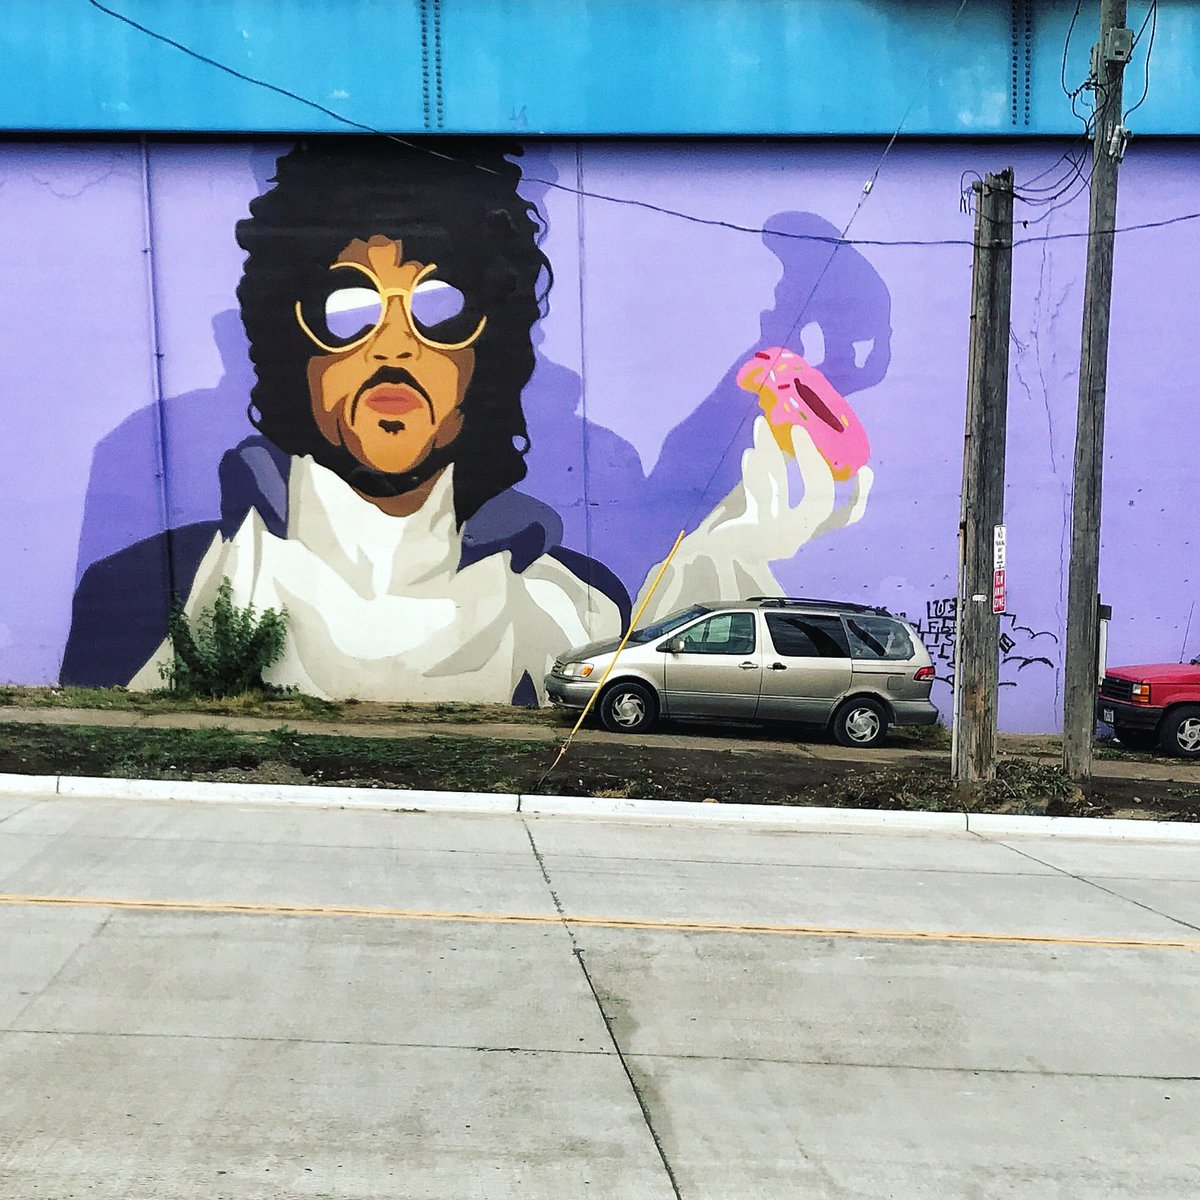 RT @JoshMBernstein: In other news, did you know that Cleveland has a mural of Prince eating a donut? https://t.co/8n752TxOoi